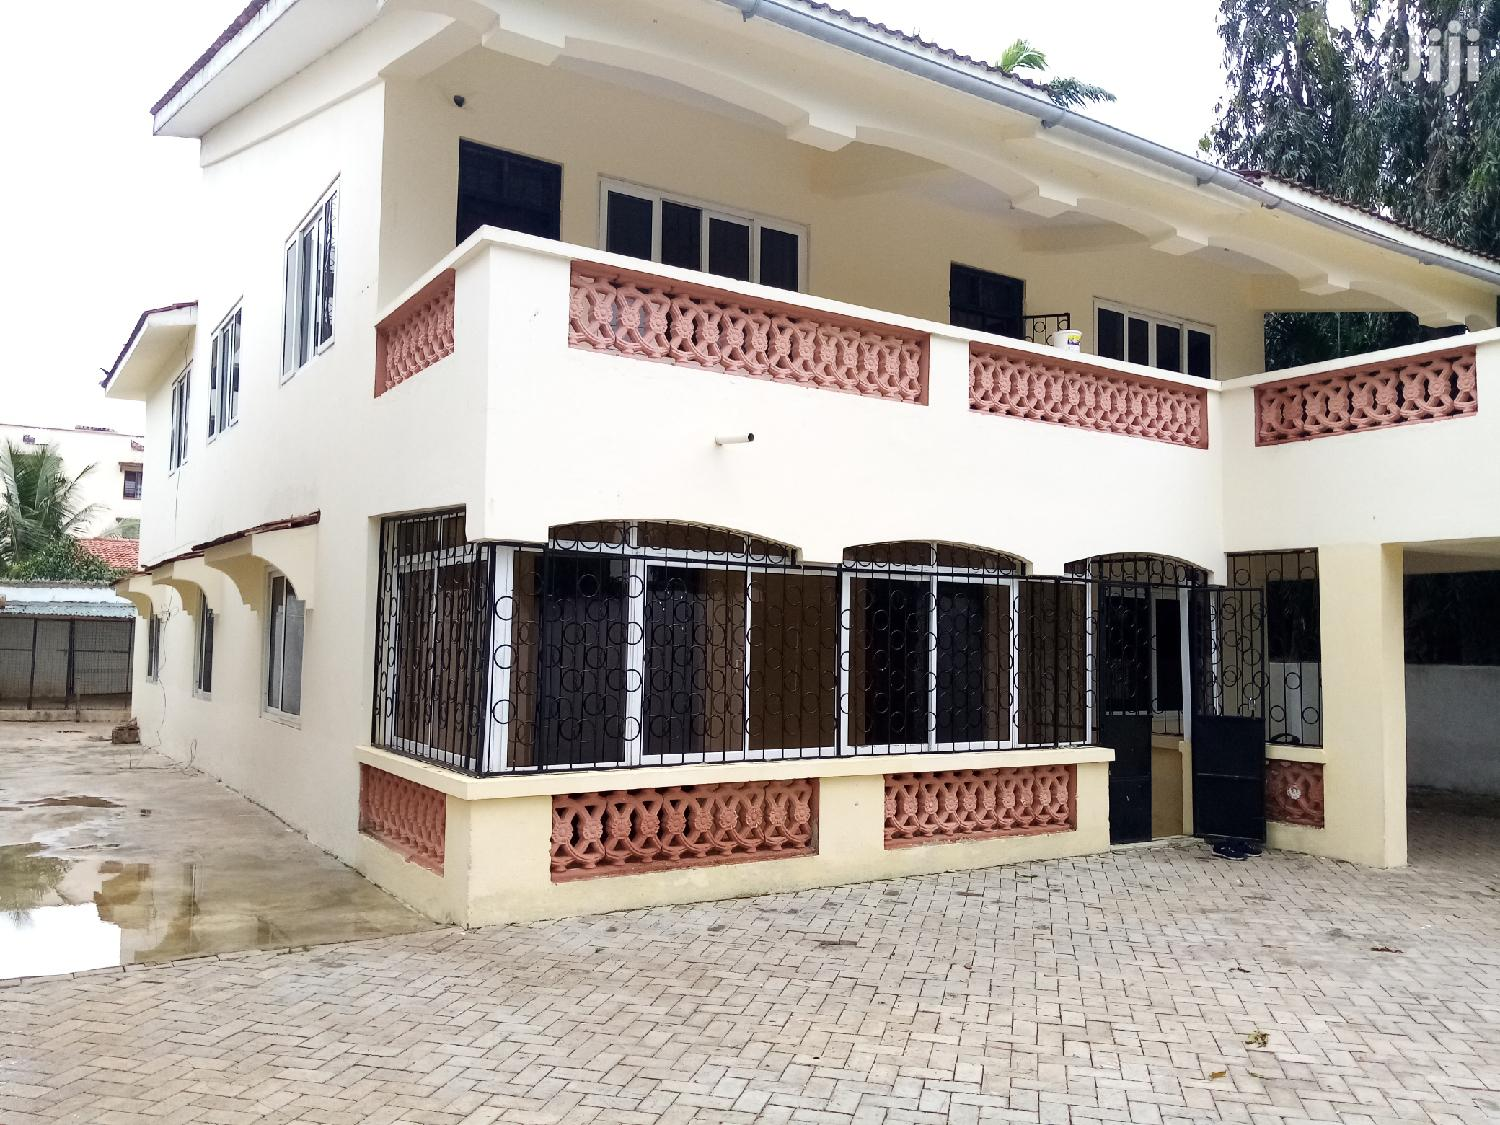 4 Bedroom Massionate Own Compound in a Secure Location Rent | Houses & Apartments For Rent for sale in Nyali, Mombasa, Kenya